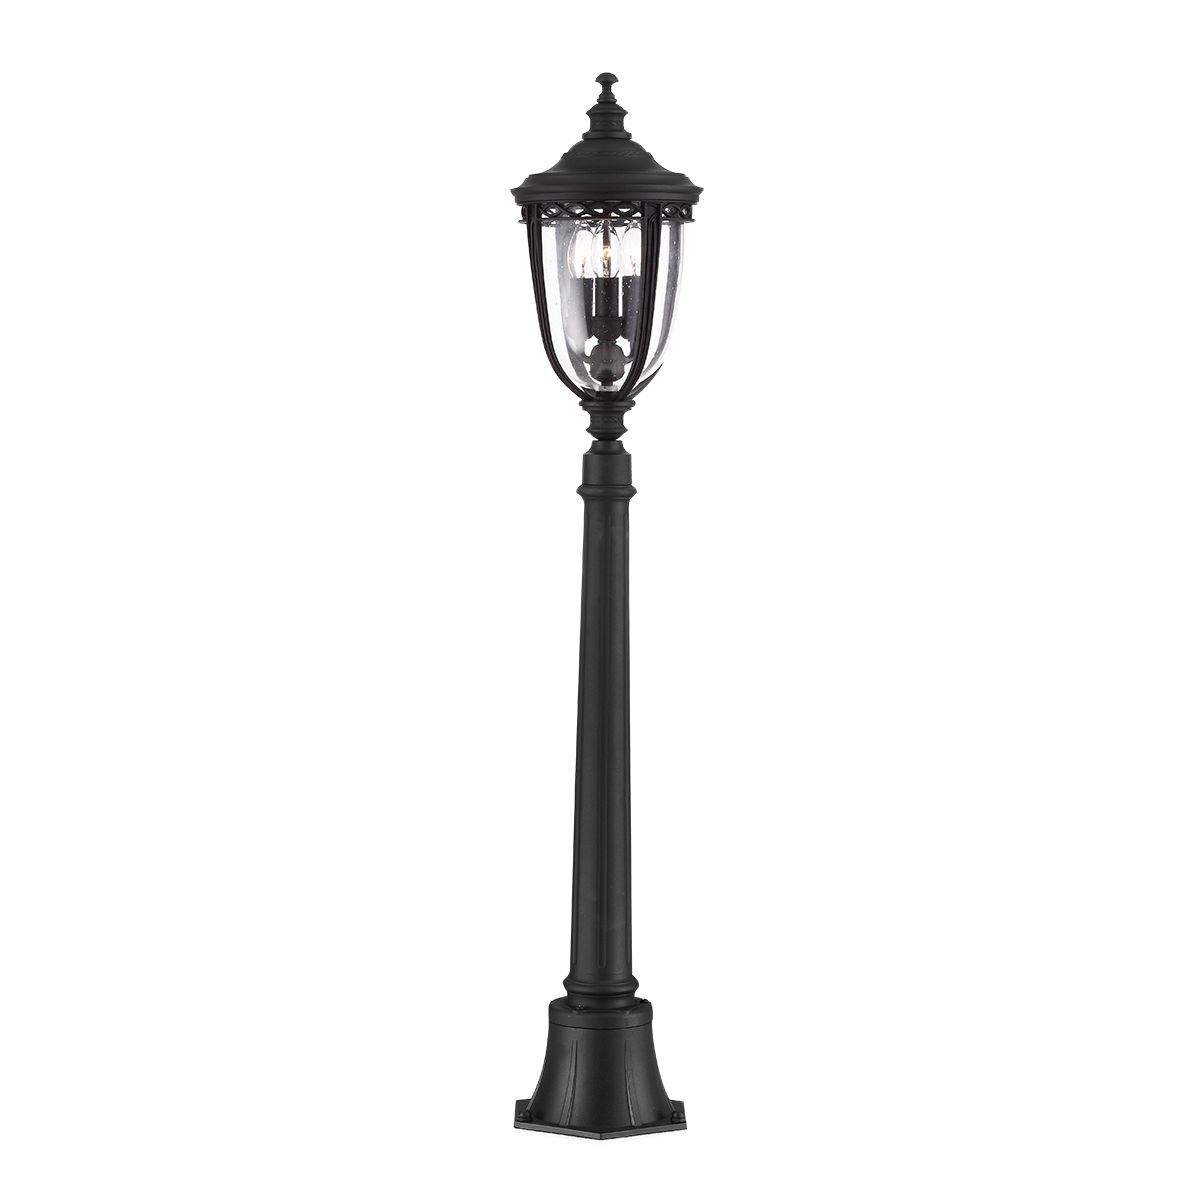 Feiss English Bridle Medium Pedestal Lantern Light Black: English Bridle Medium Outdoor Bollard In A Black Finish